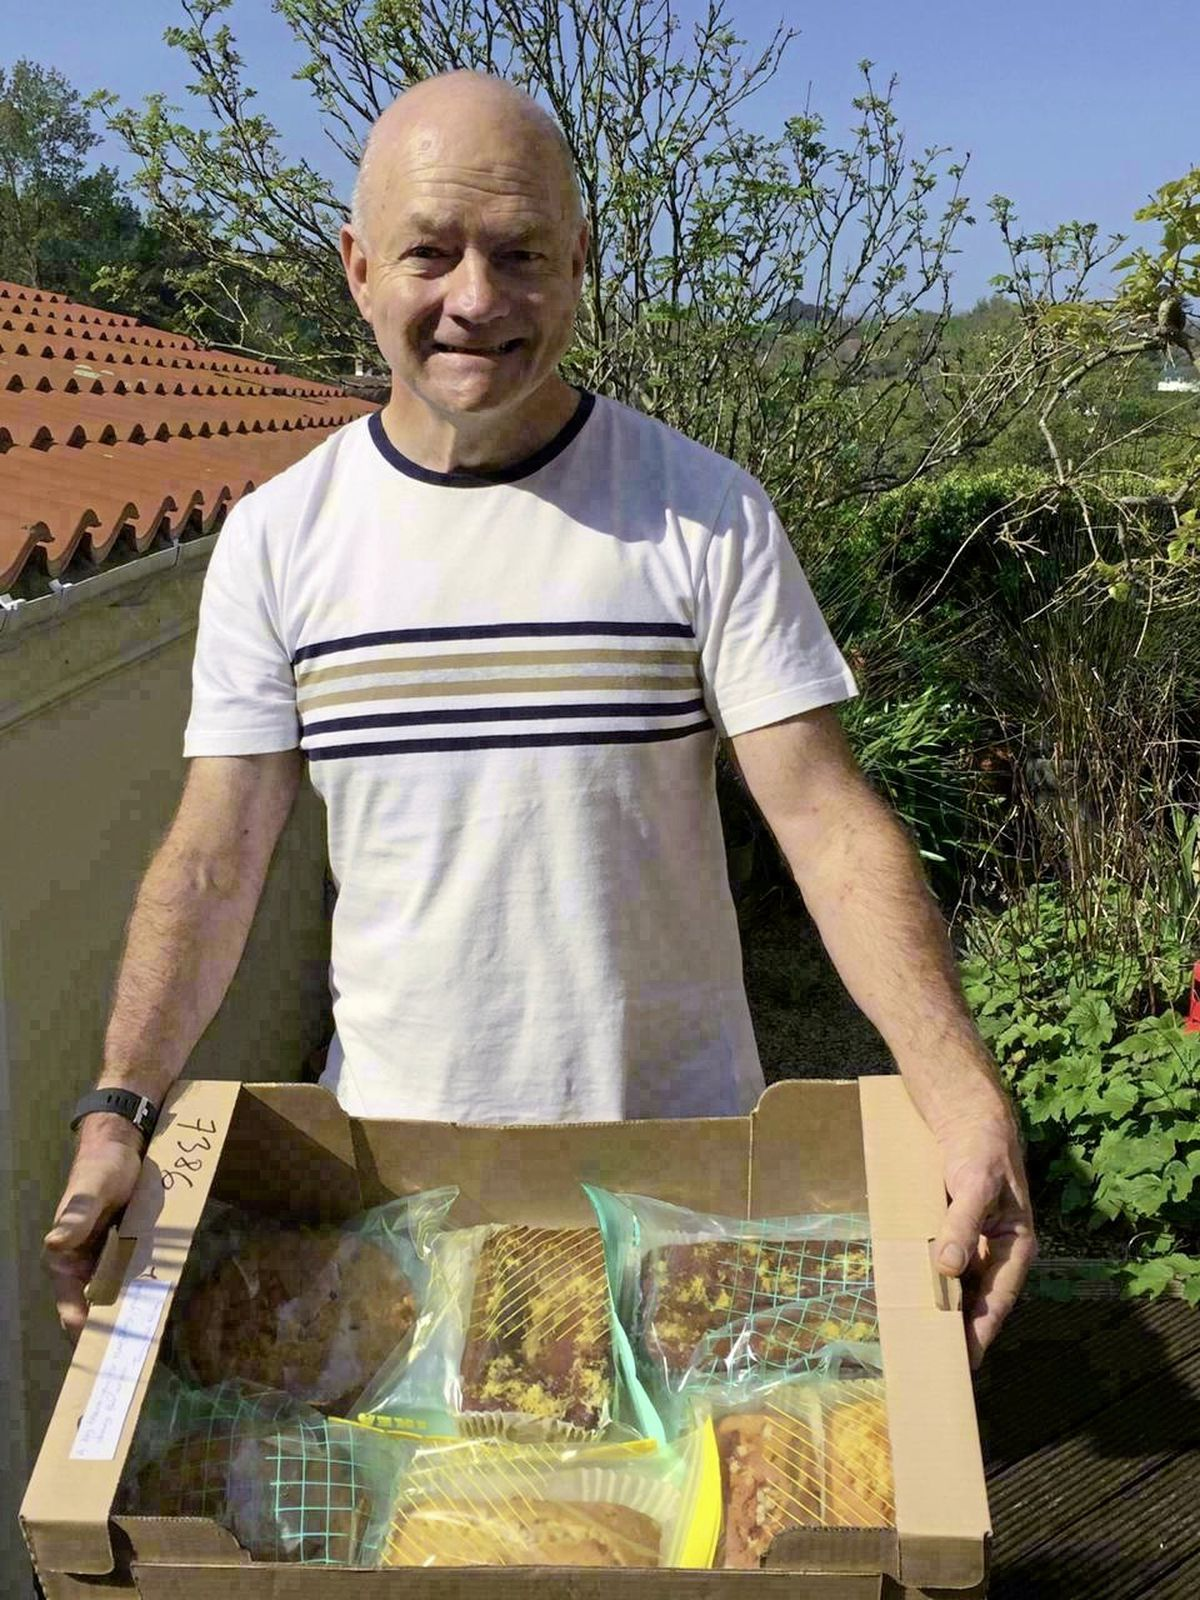 Stroke survivor Tony Robinson has been baking cakes for staff at the PEH during lockdown as a way of giving back to the service which has helped him on his road to recovery. Image supplied. (29273182)